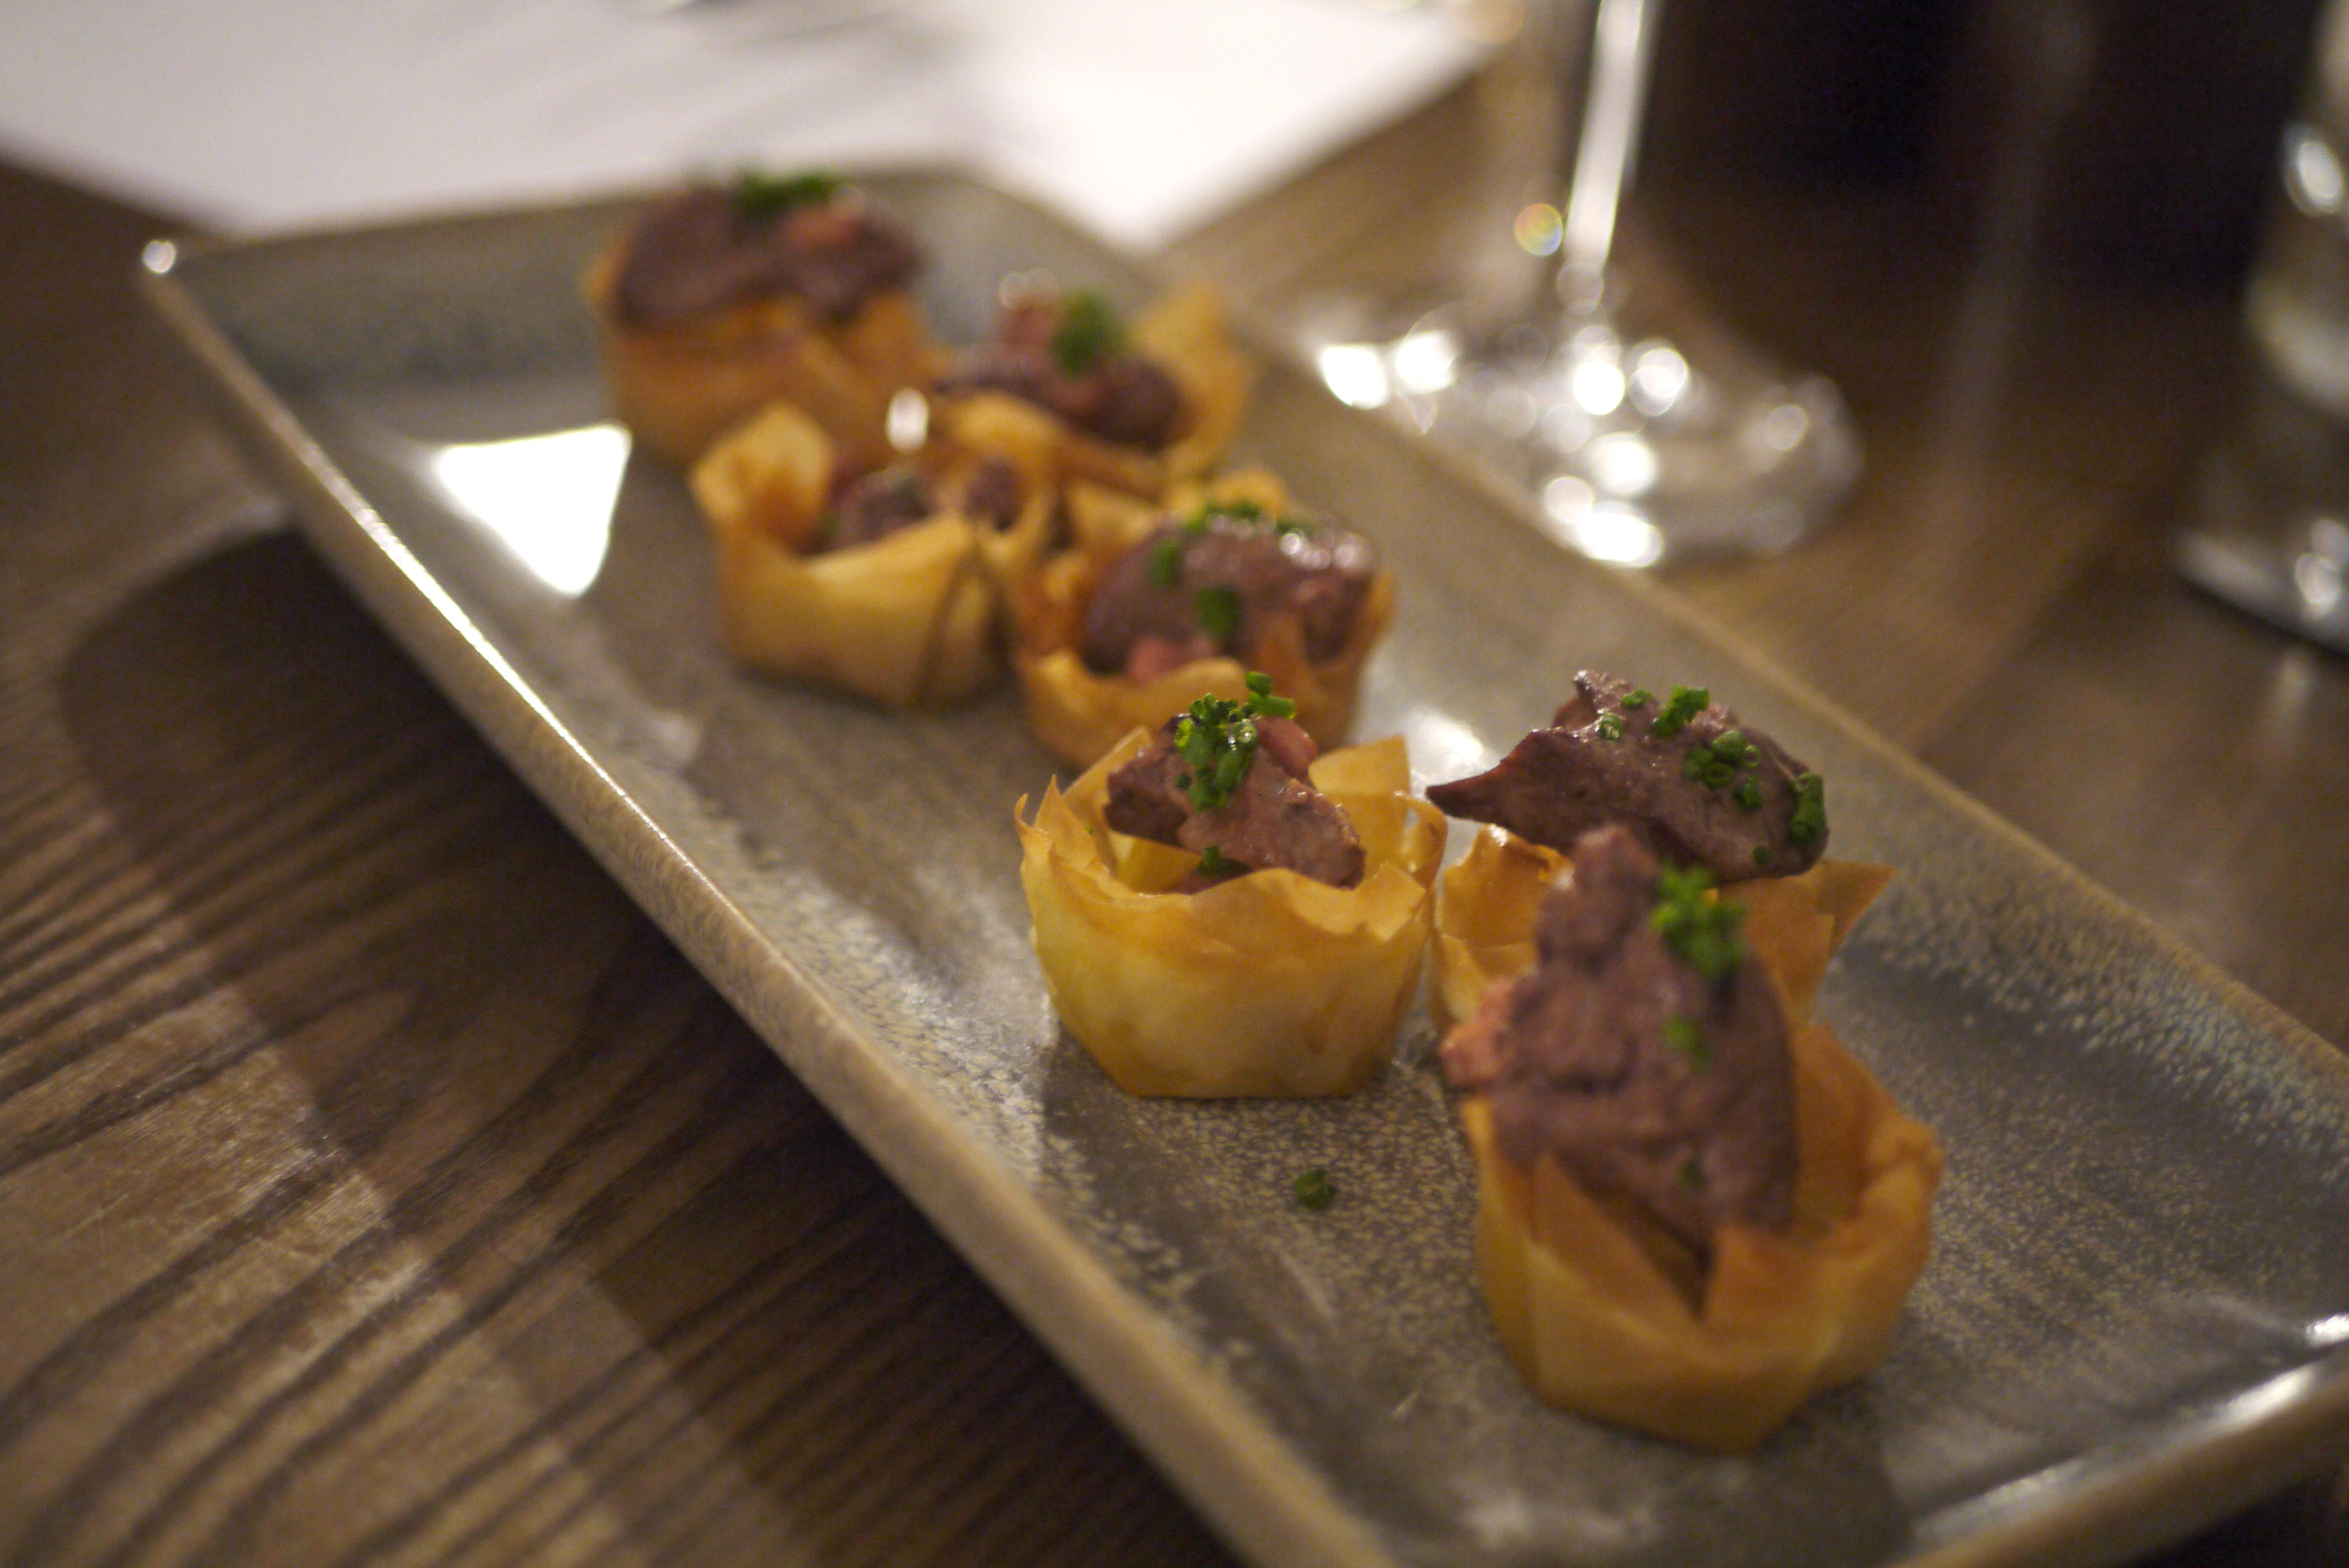 Sauteed chicken livers, smoked bacon in filo pastry